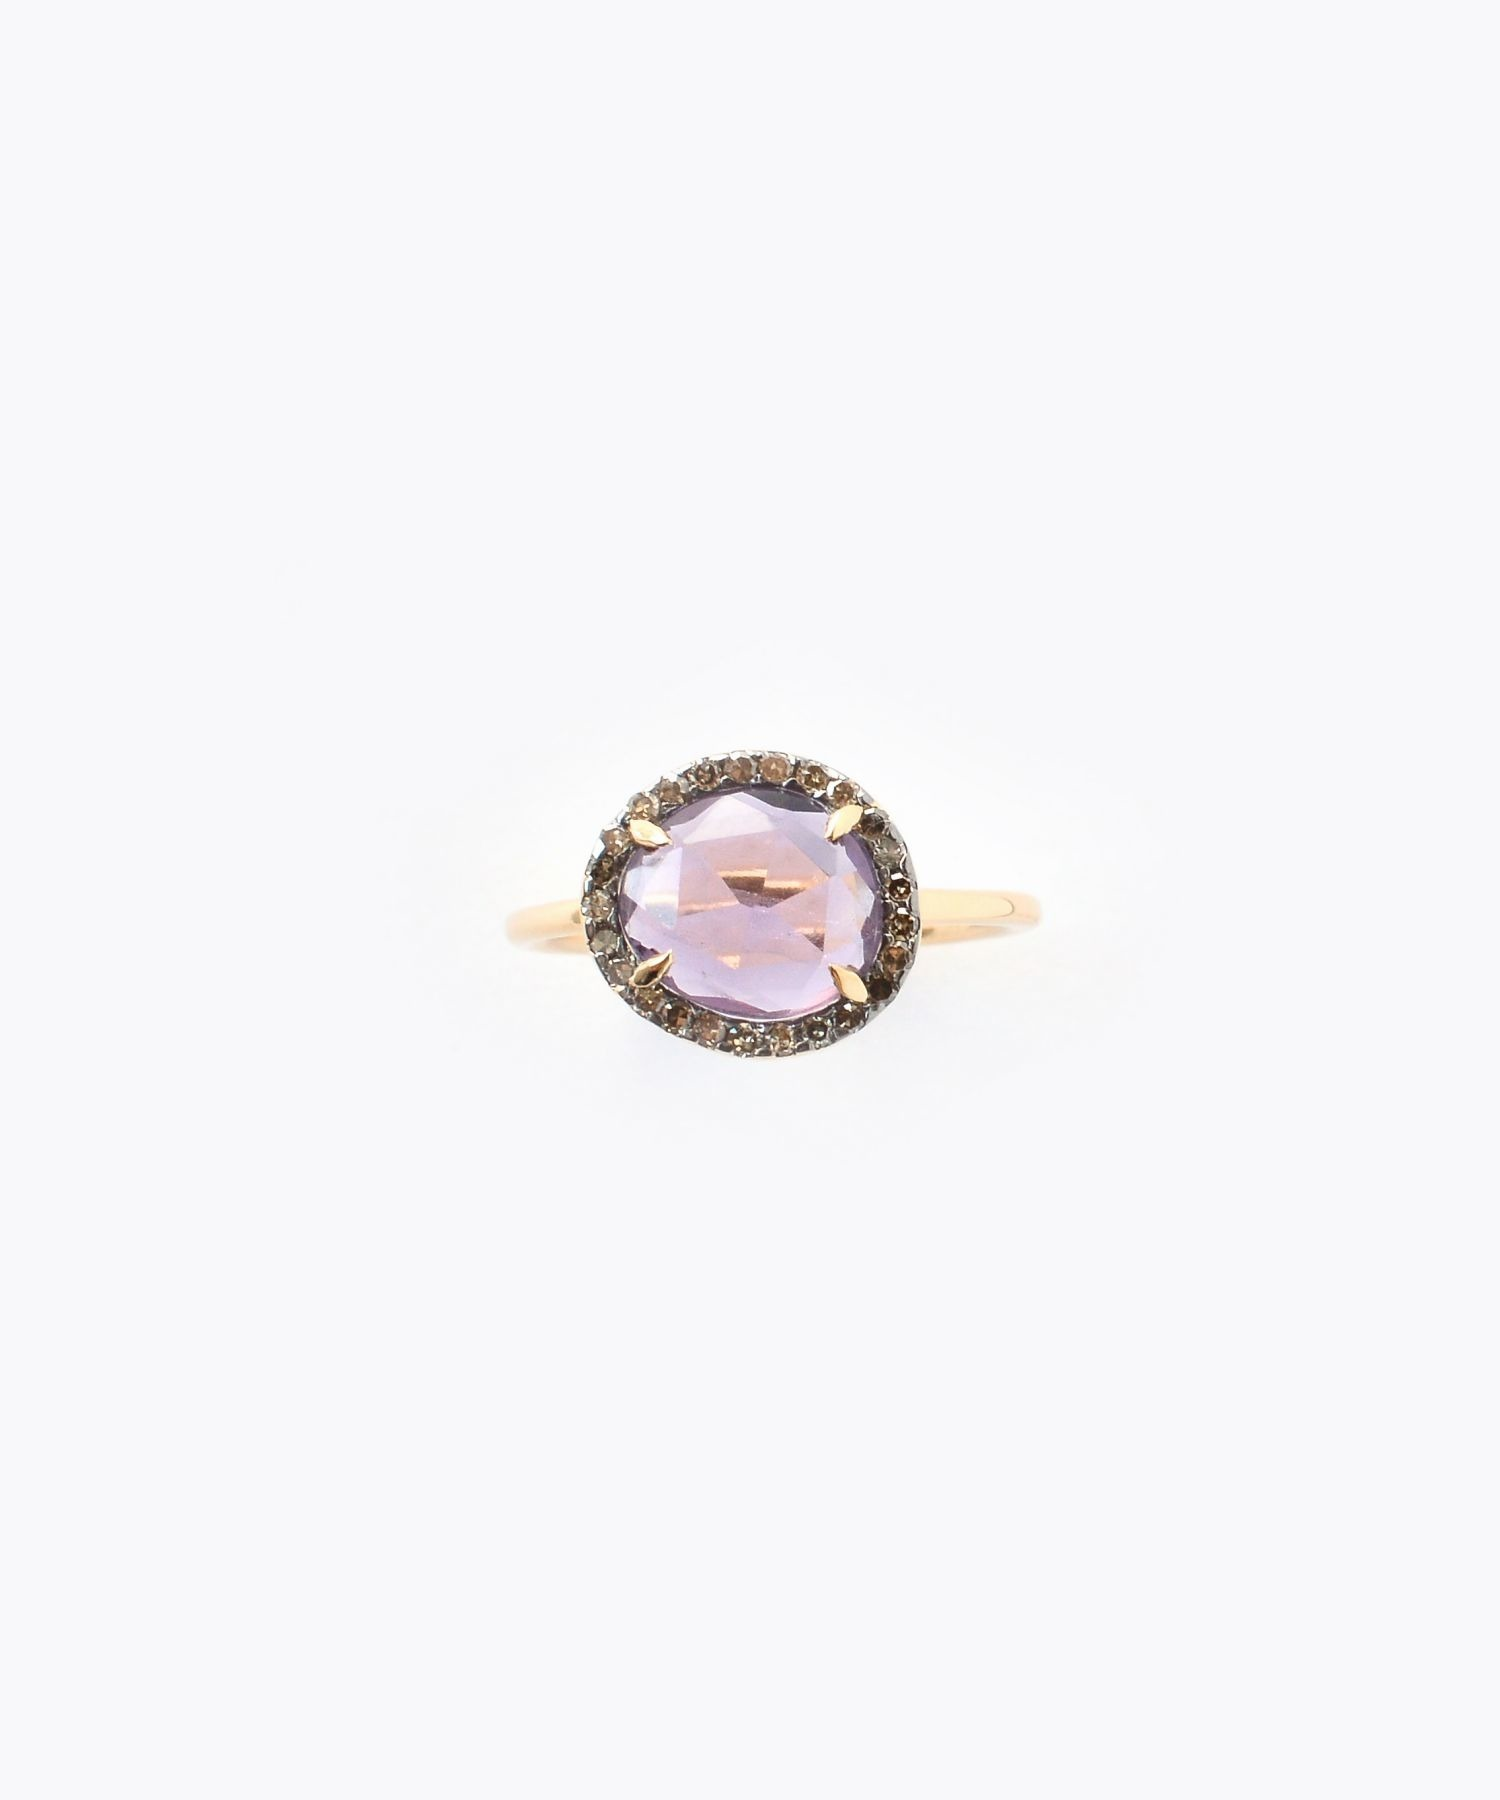 [elafonisi] small amethyst with pave diamonds ring